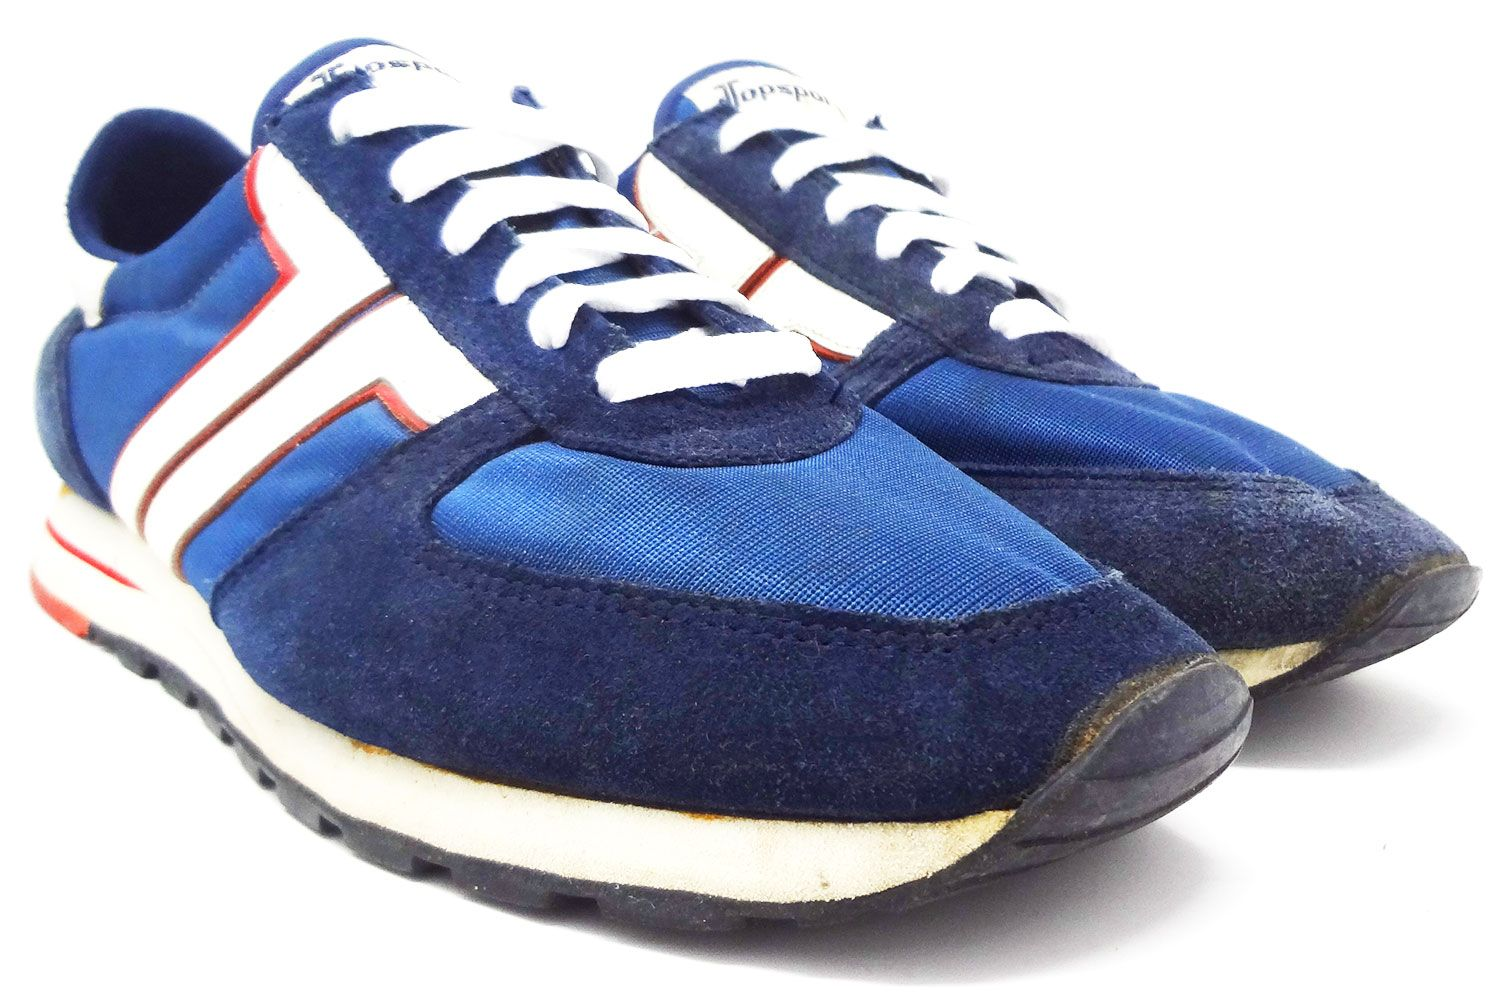 Rare 80s Topsport Vintage Sneakers The Deffest Retro Sneakers Sneakers Running Shoes